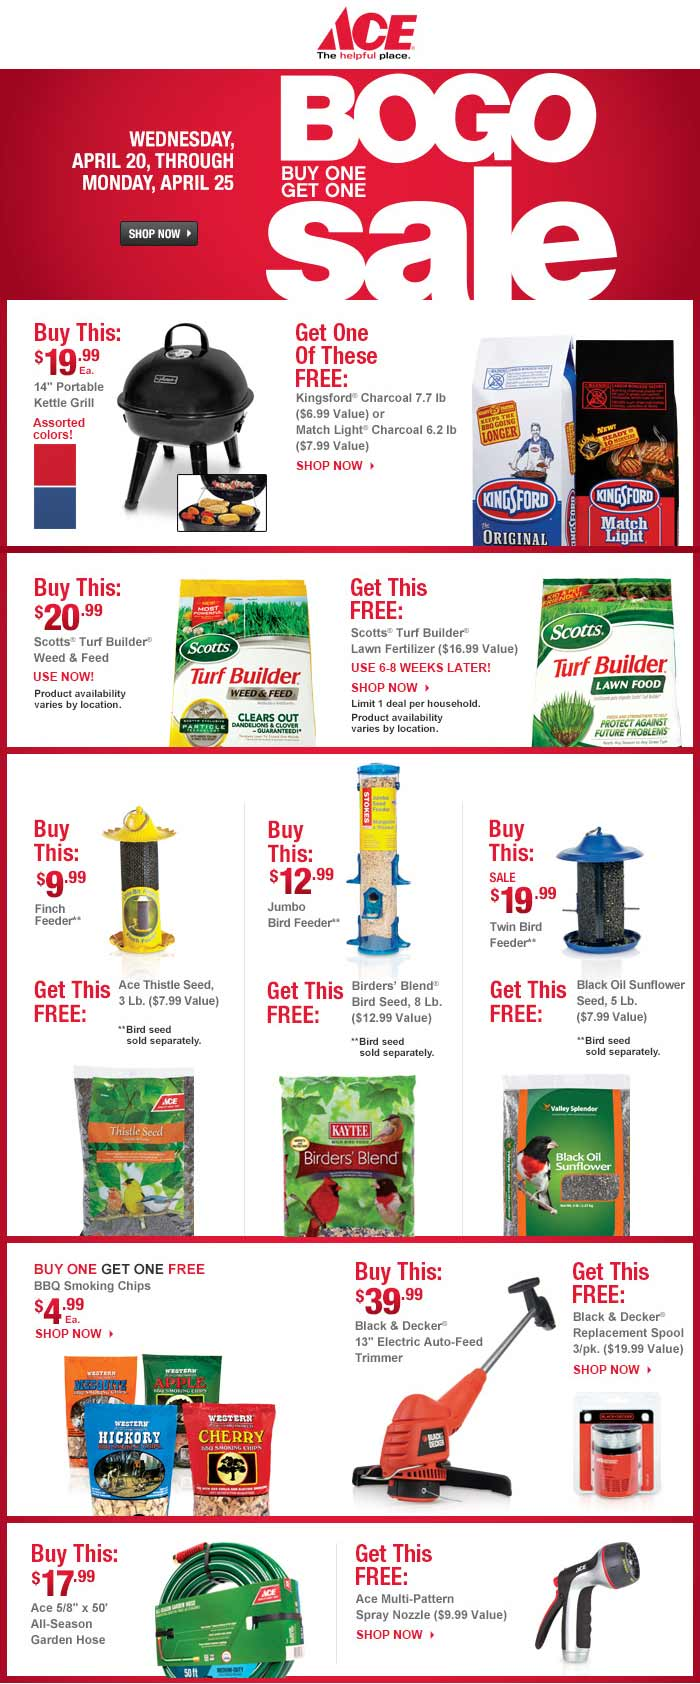 Ace Hardware Coupon January 2017 Spring bogo sale going on in-store & online at Ace Hardware